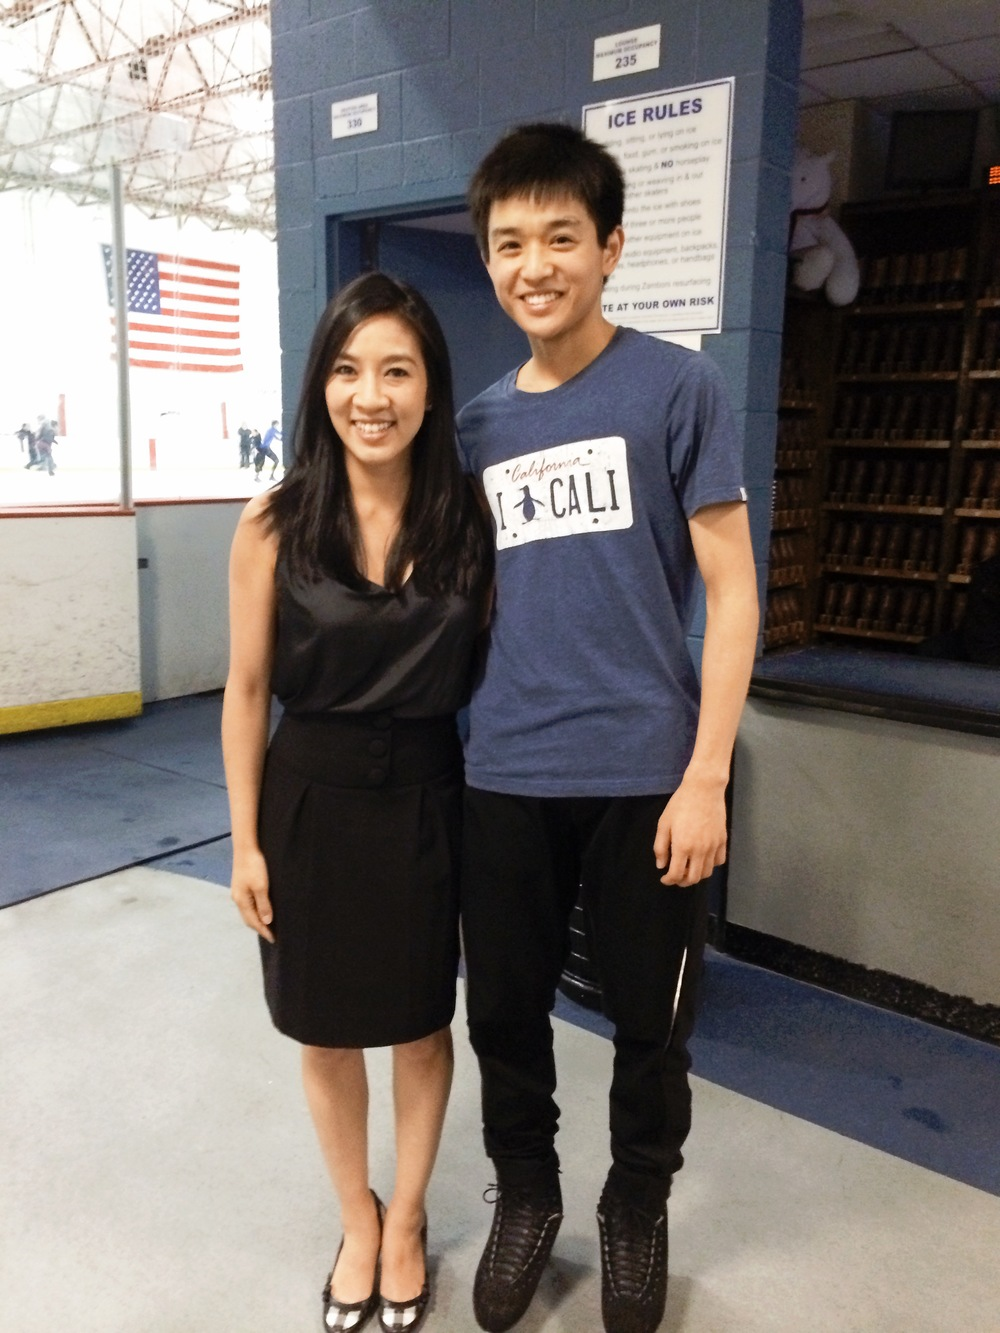 Even got a chance to get a pic with Michelle Kwan when she visited!